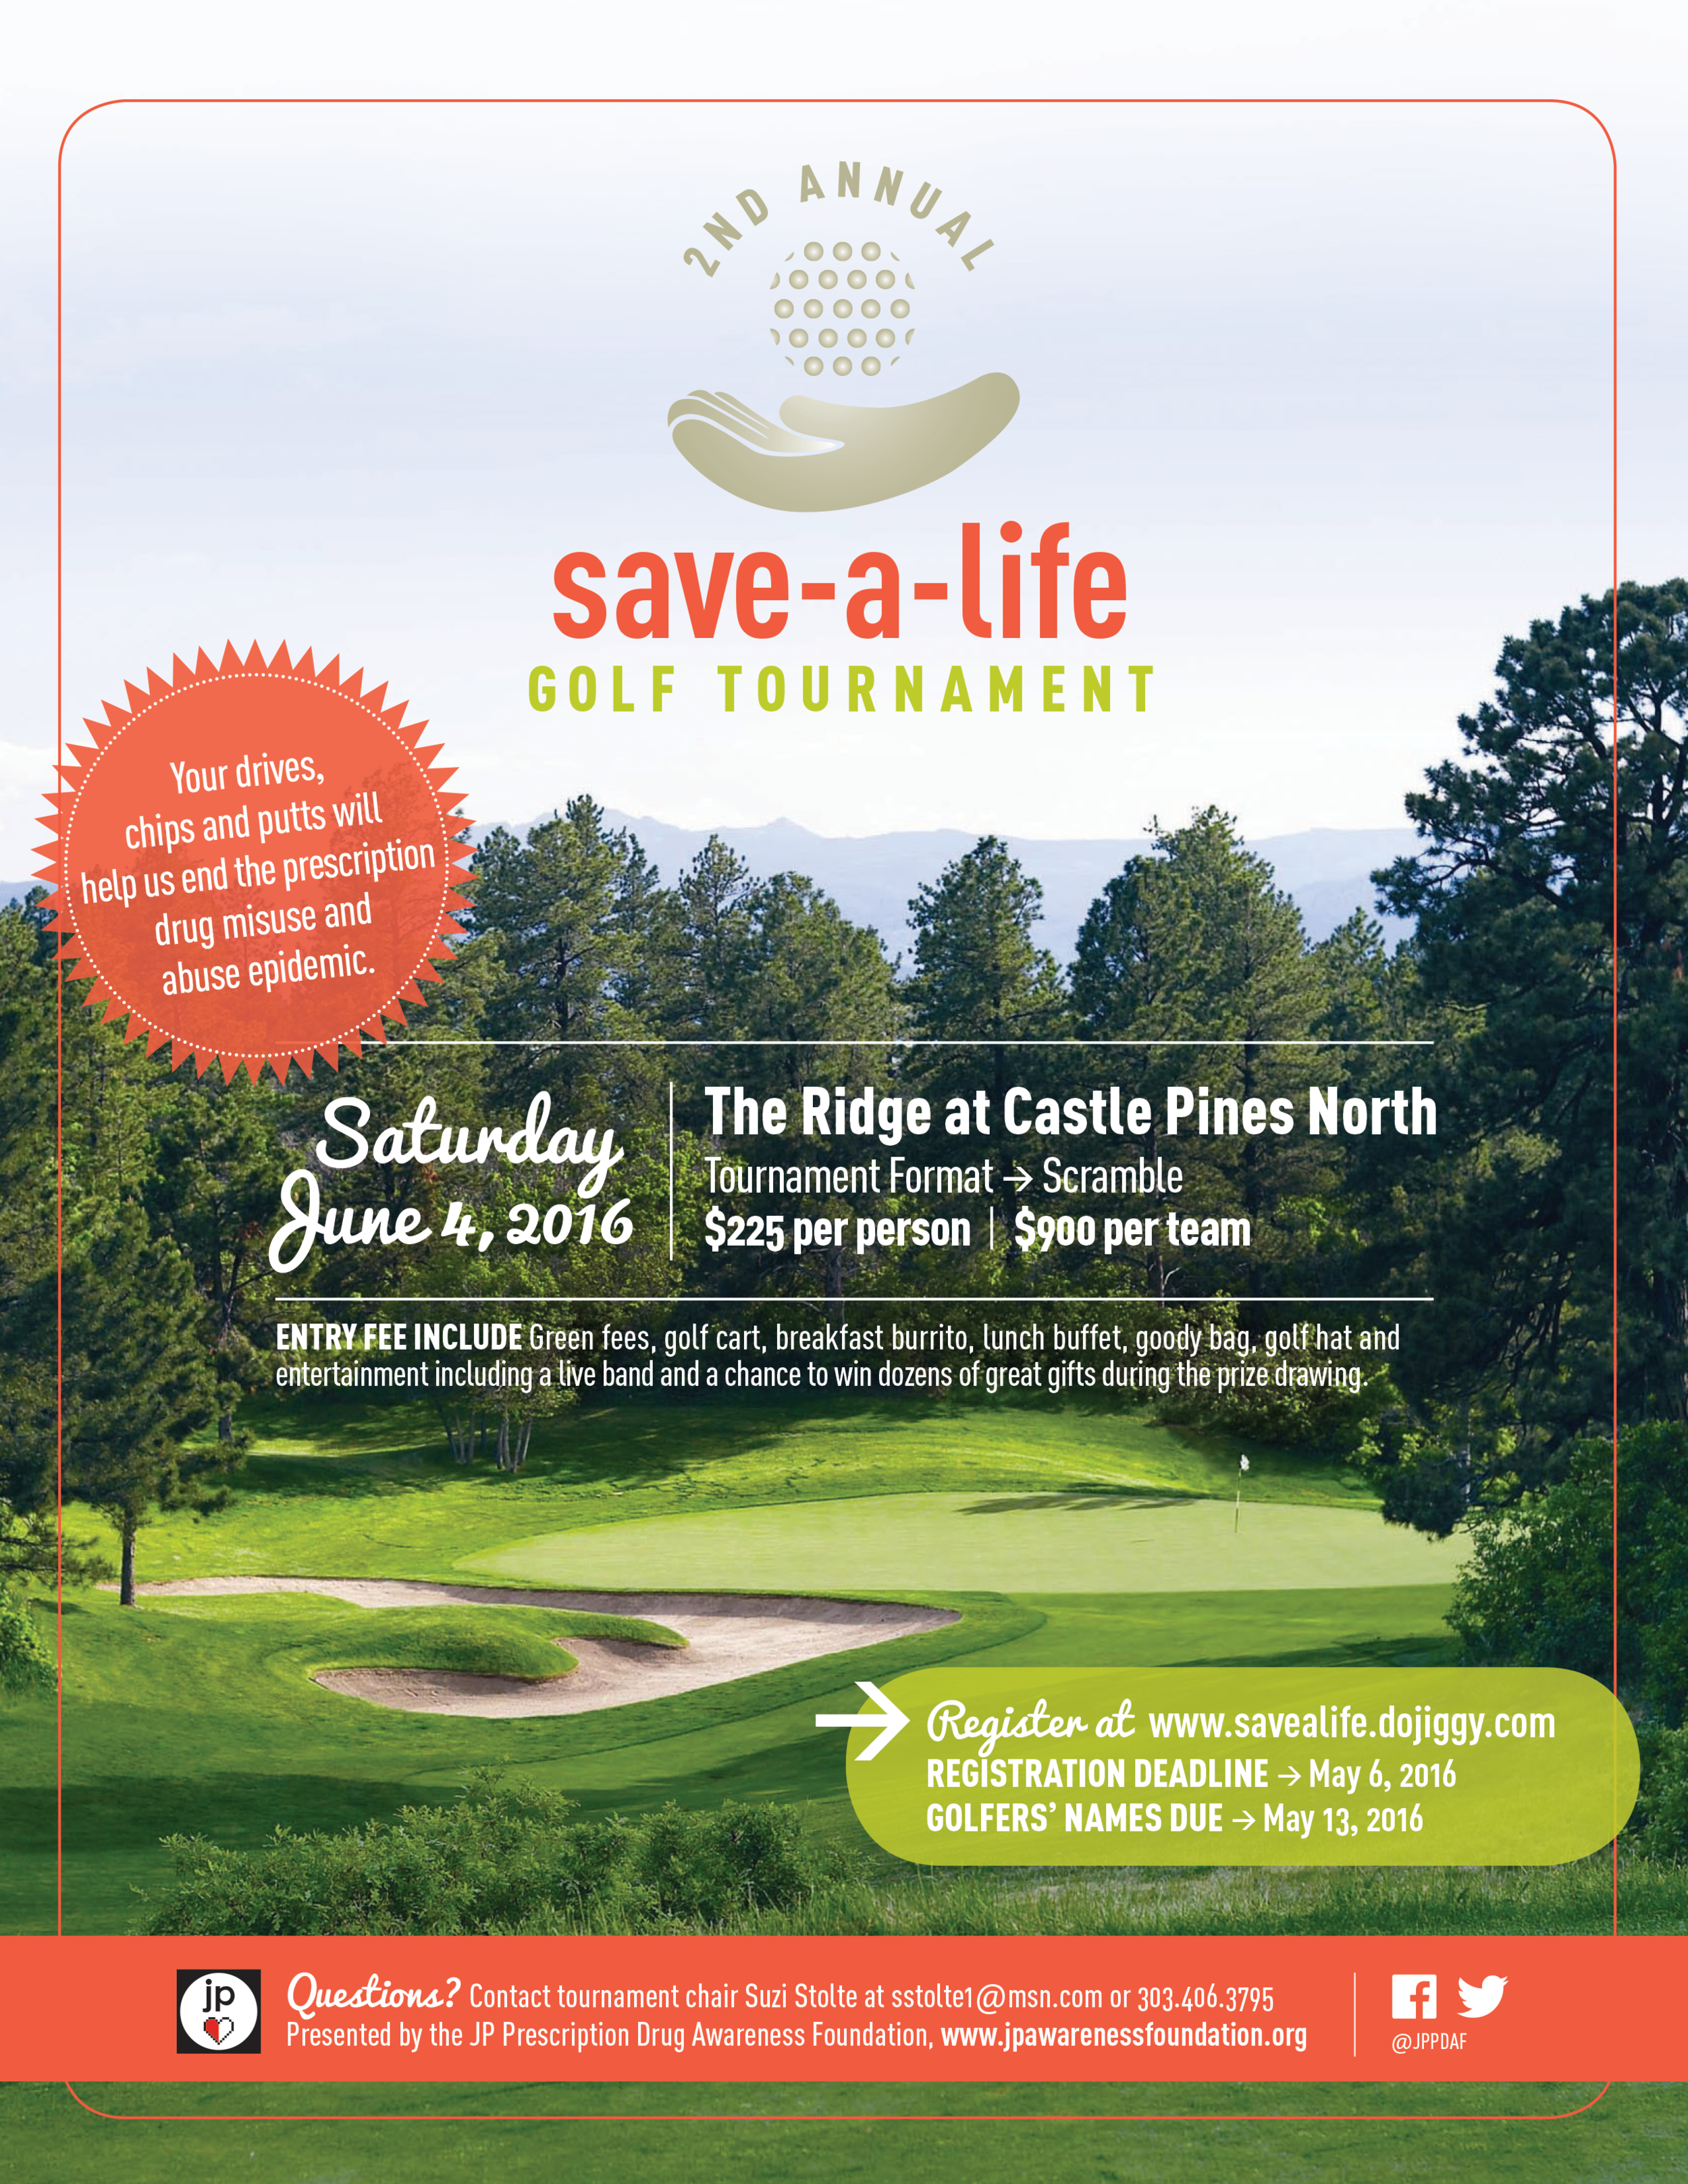 save-a-life_flyer_011416_final-1.png